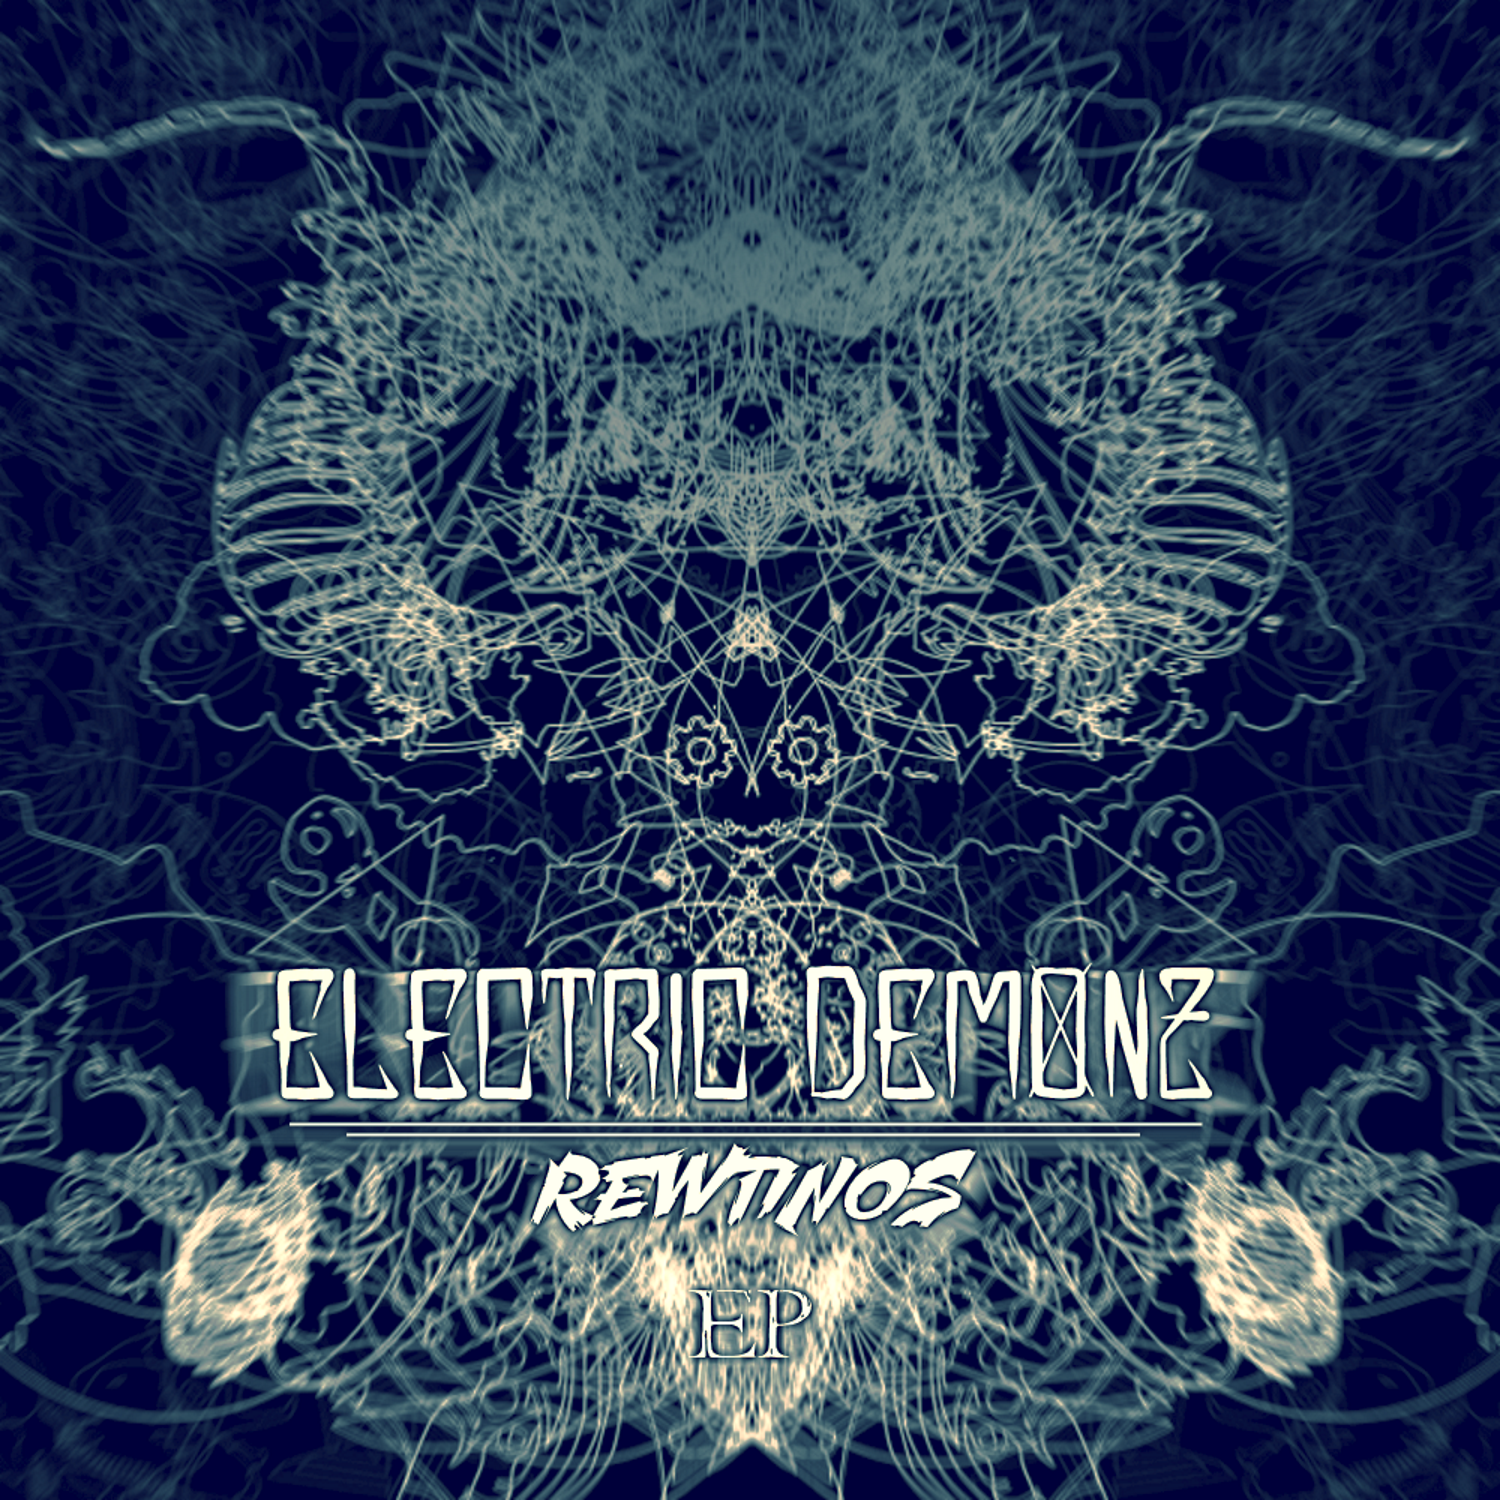 Rewtinos - Electric Demonz Ep